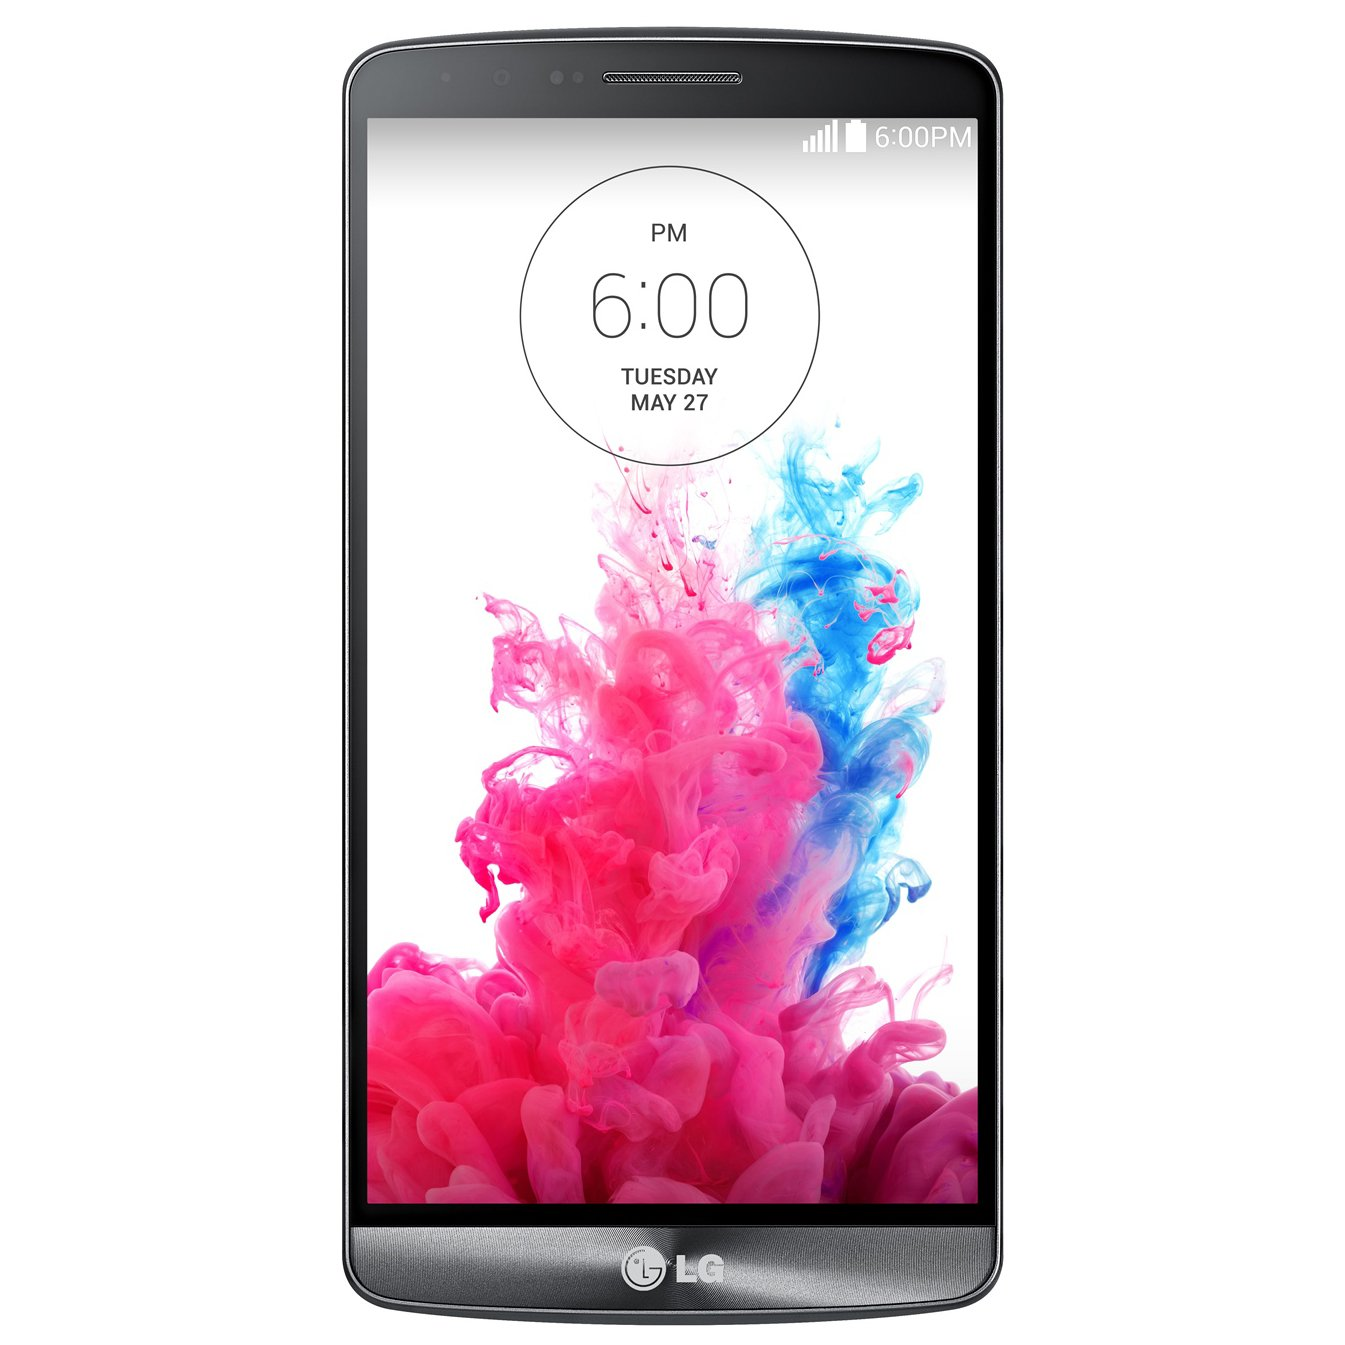 LG Wireless One LG G3 GSM Unlocked T-Mobile - Unlocked Cell Phones for - Retail Packaging - Metallic Black-Refurbished